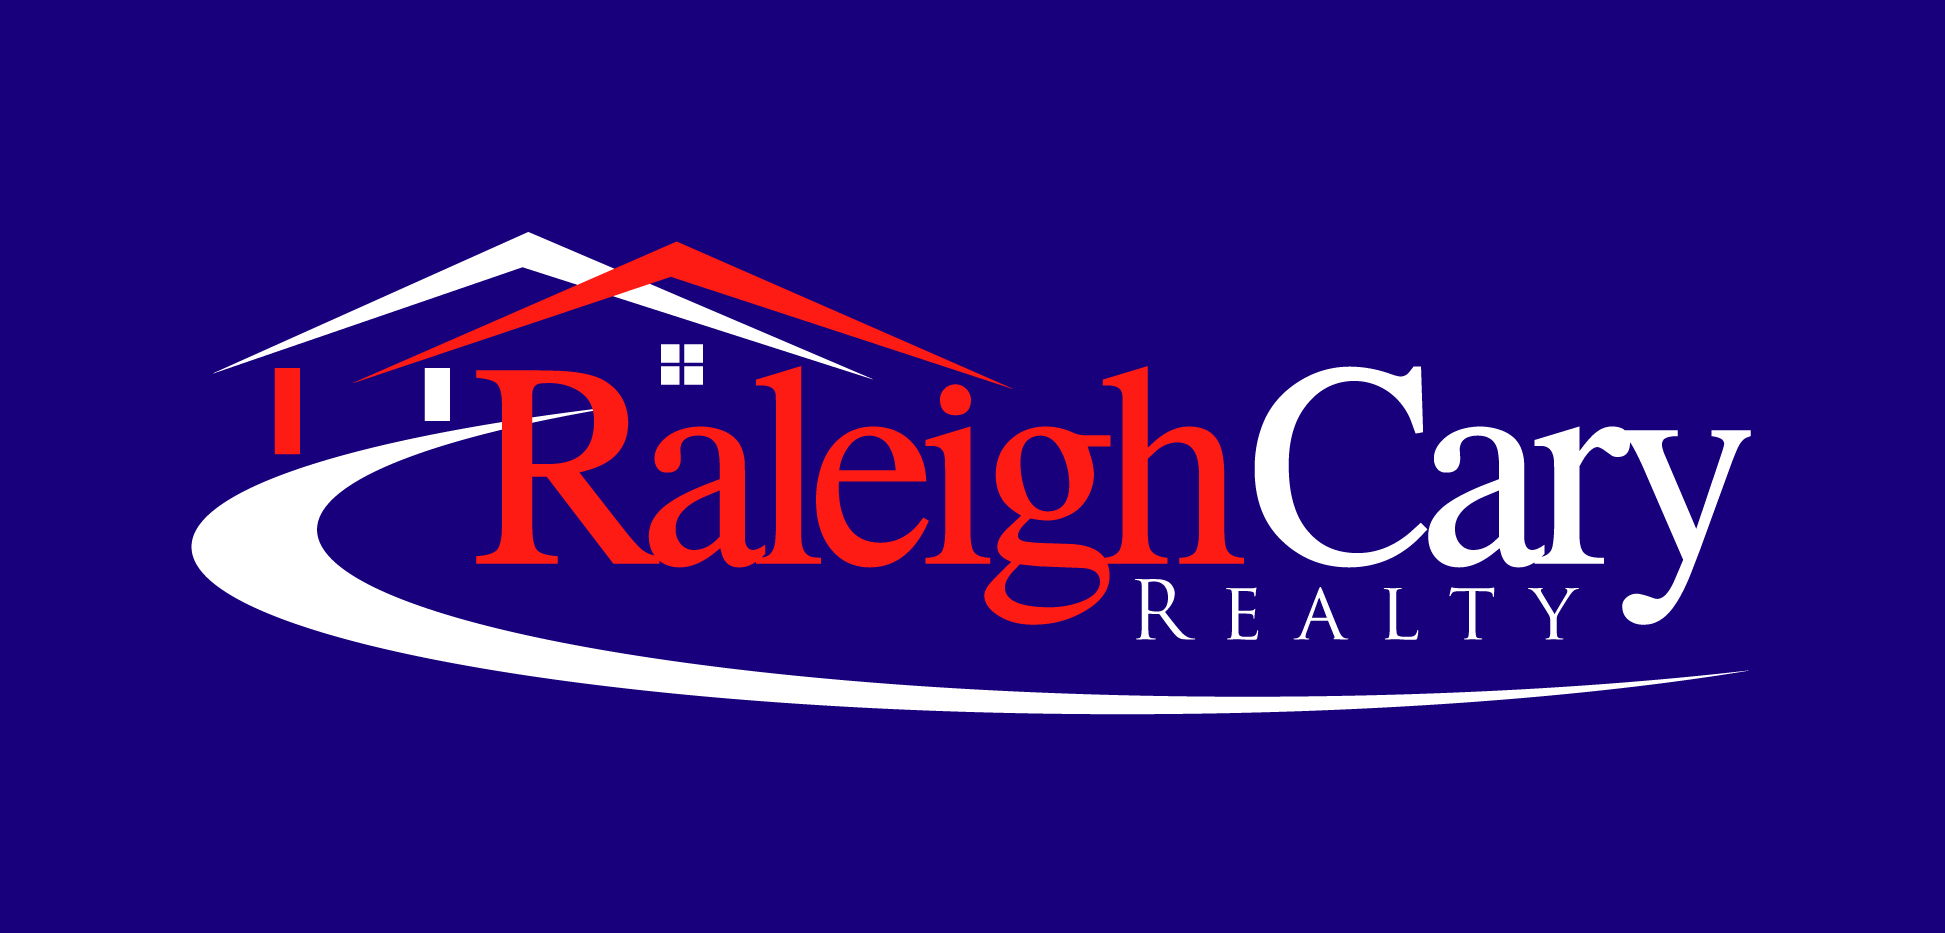 Raleigh Cary